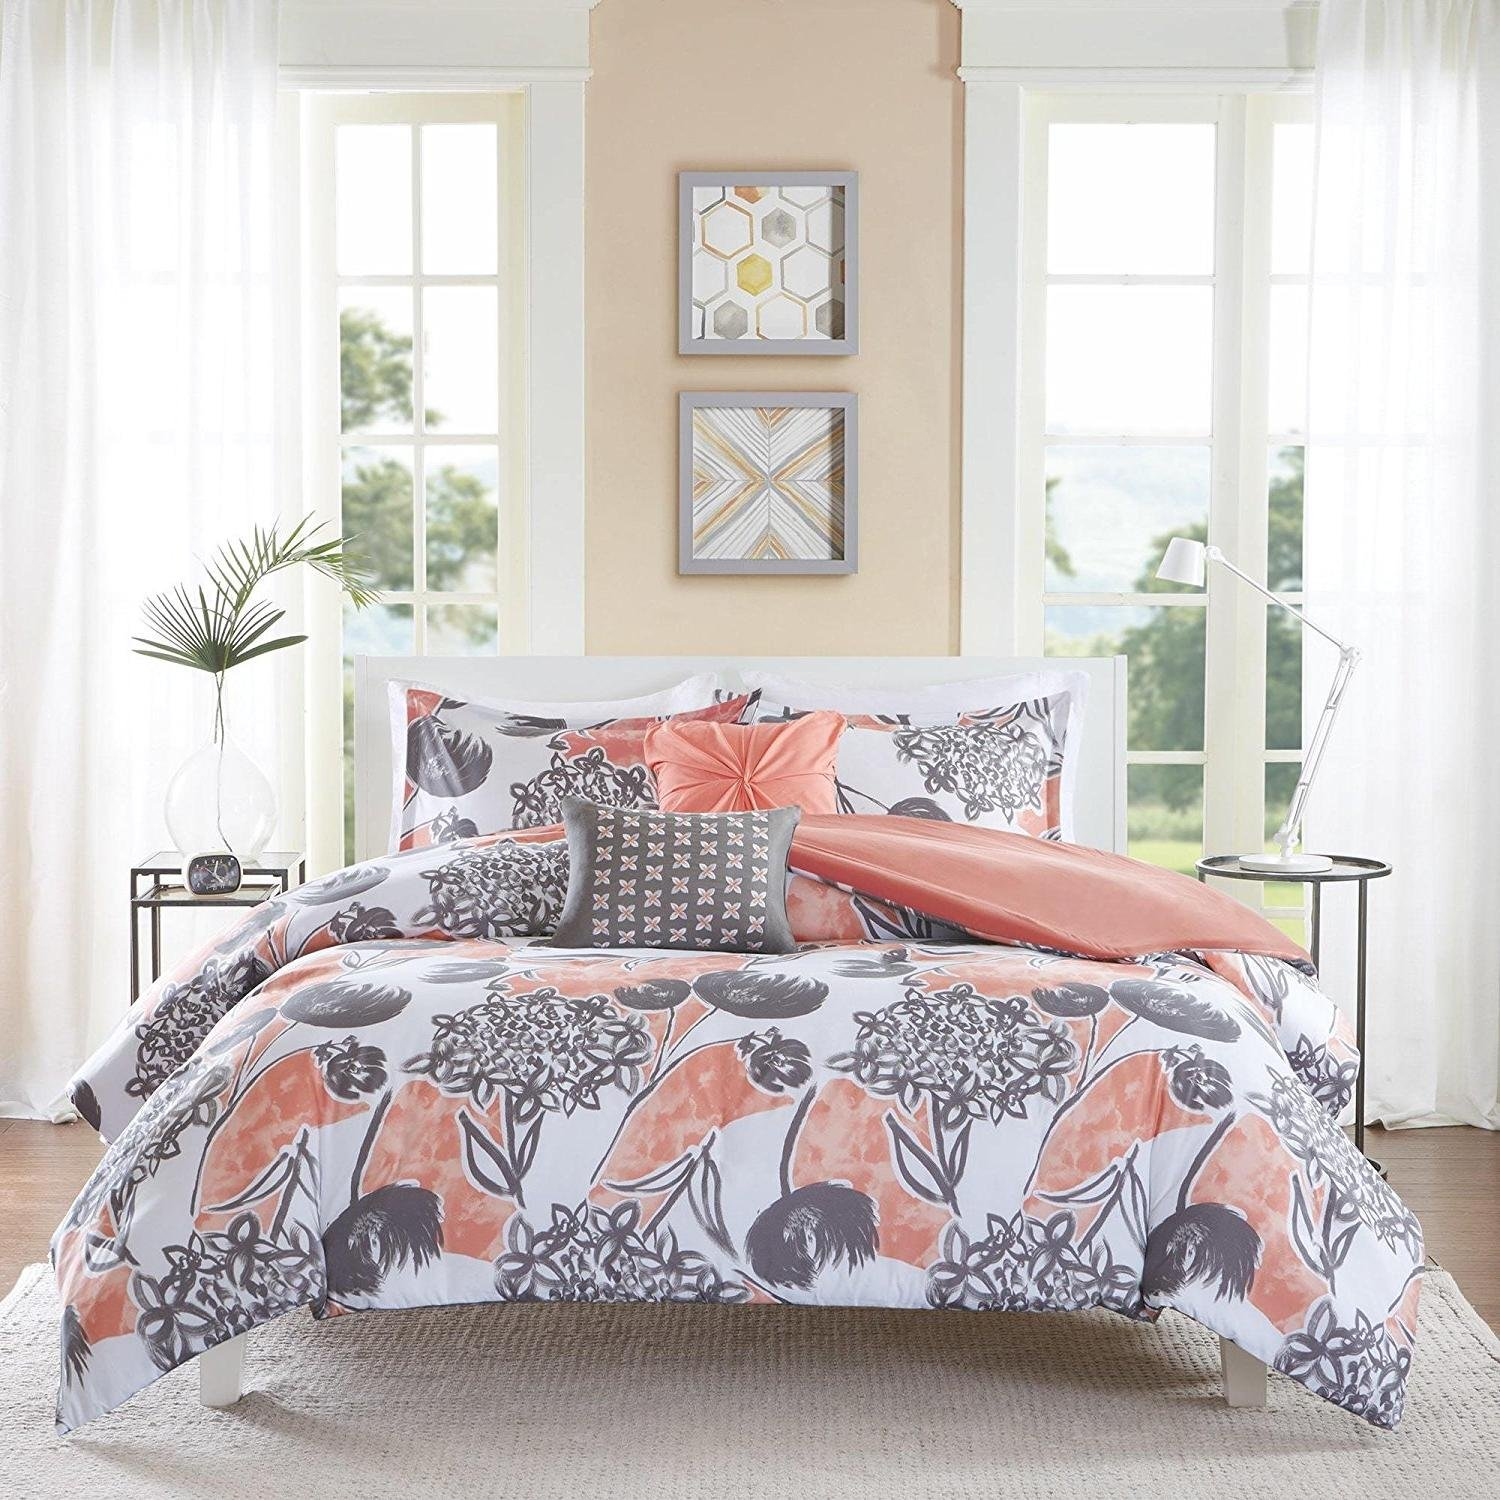 DP 5pc Pink White Floral Full Queen Size Comforter Set, Flower Lily Themed Shabby Chic French Country Cottage Gorgeous Bedding, Vibrant Flowers Nature, Polyester